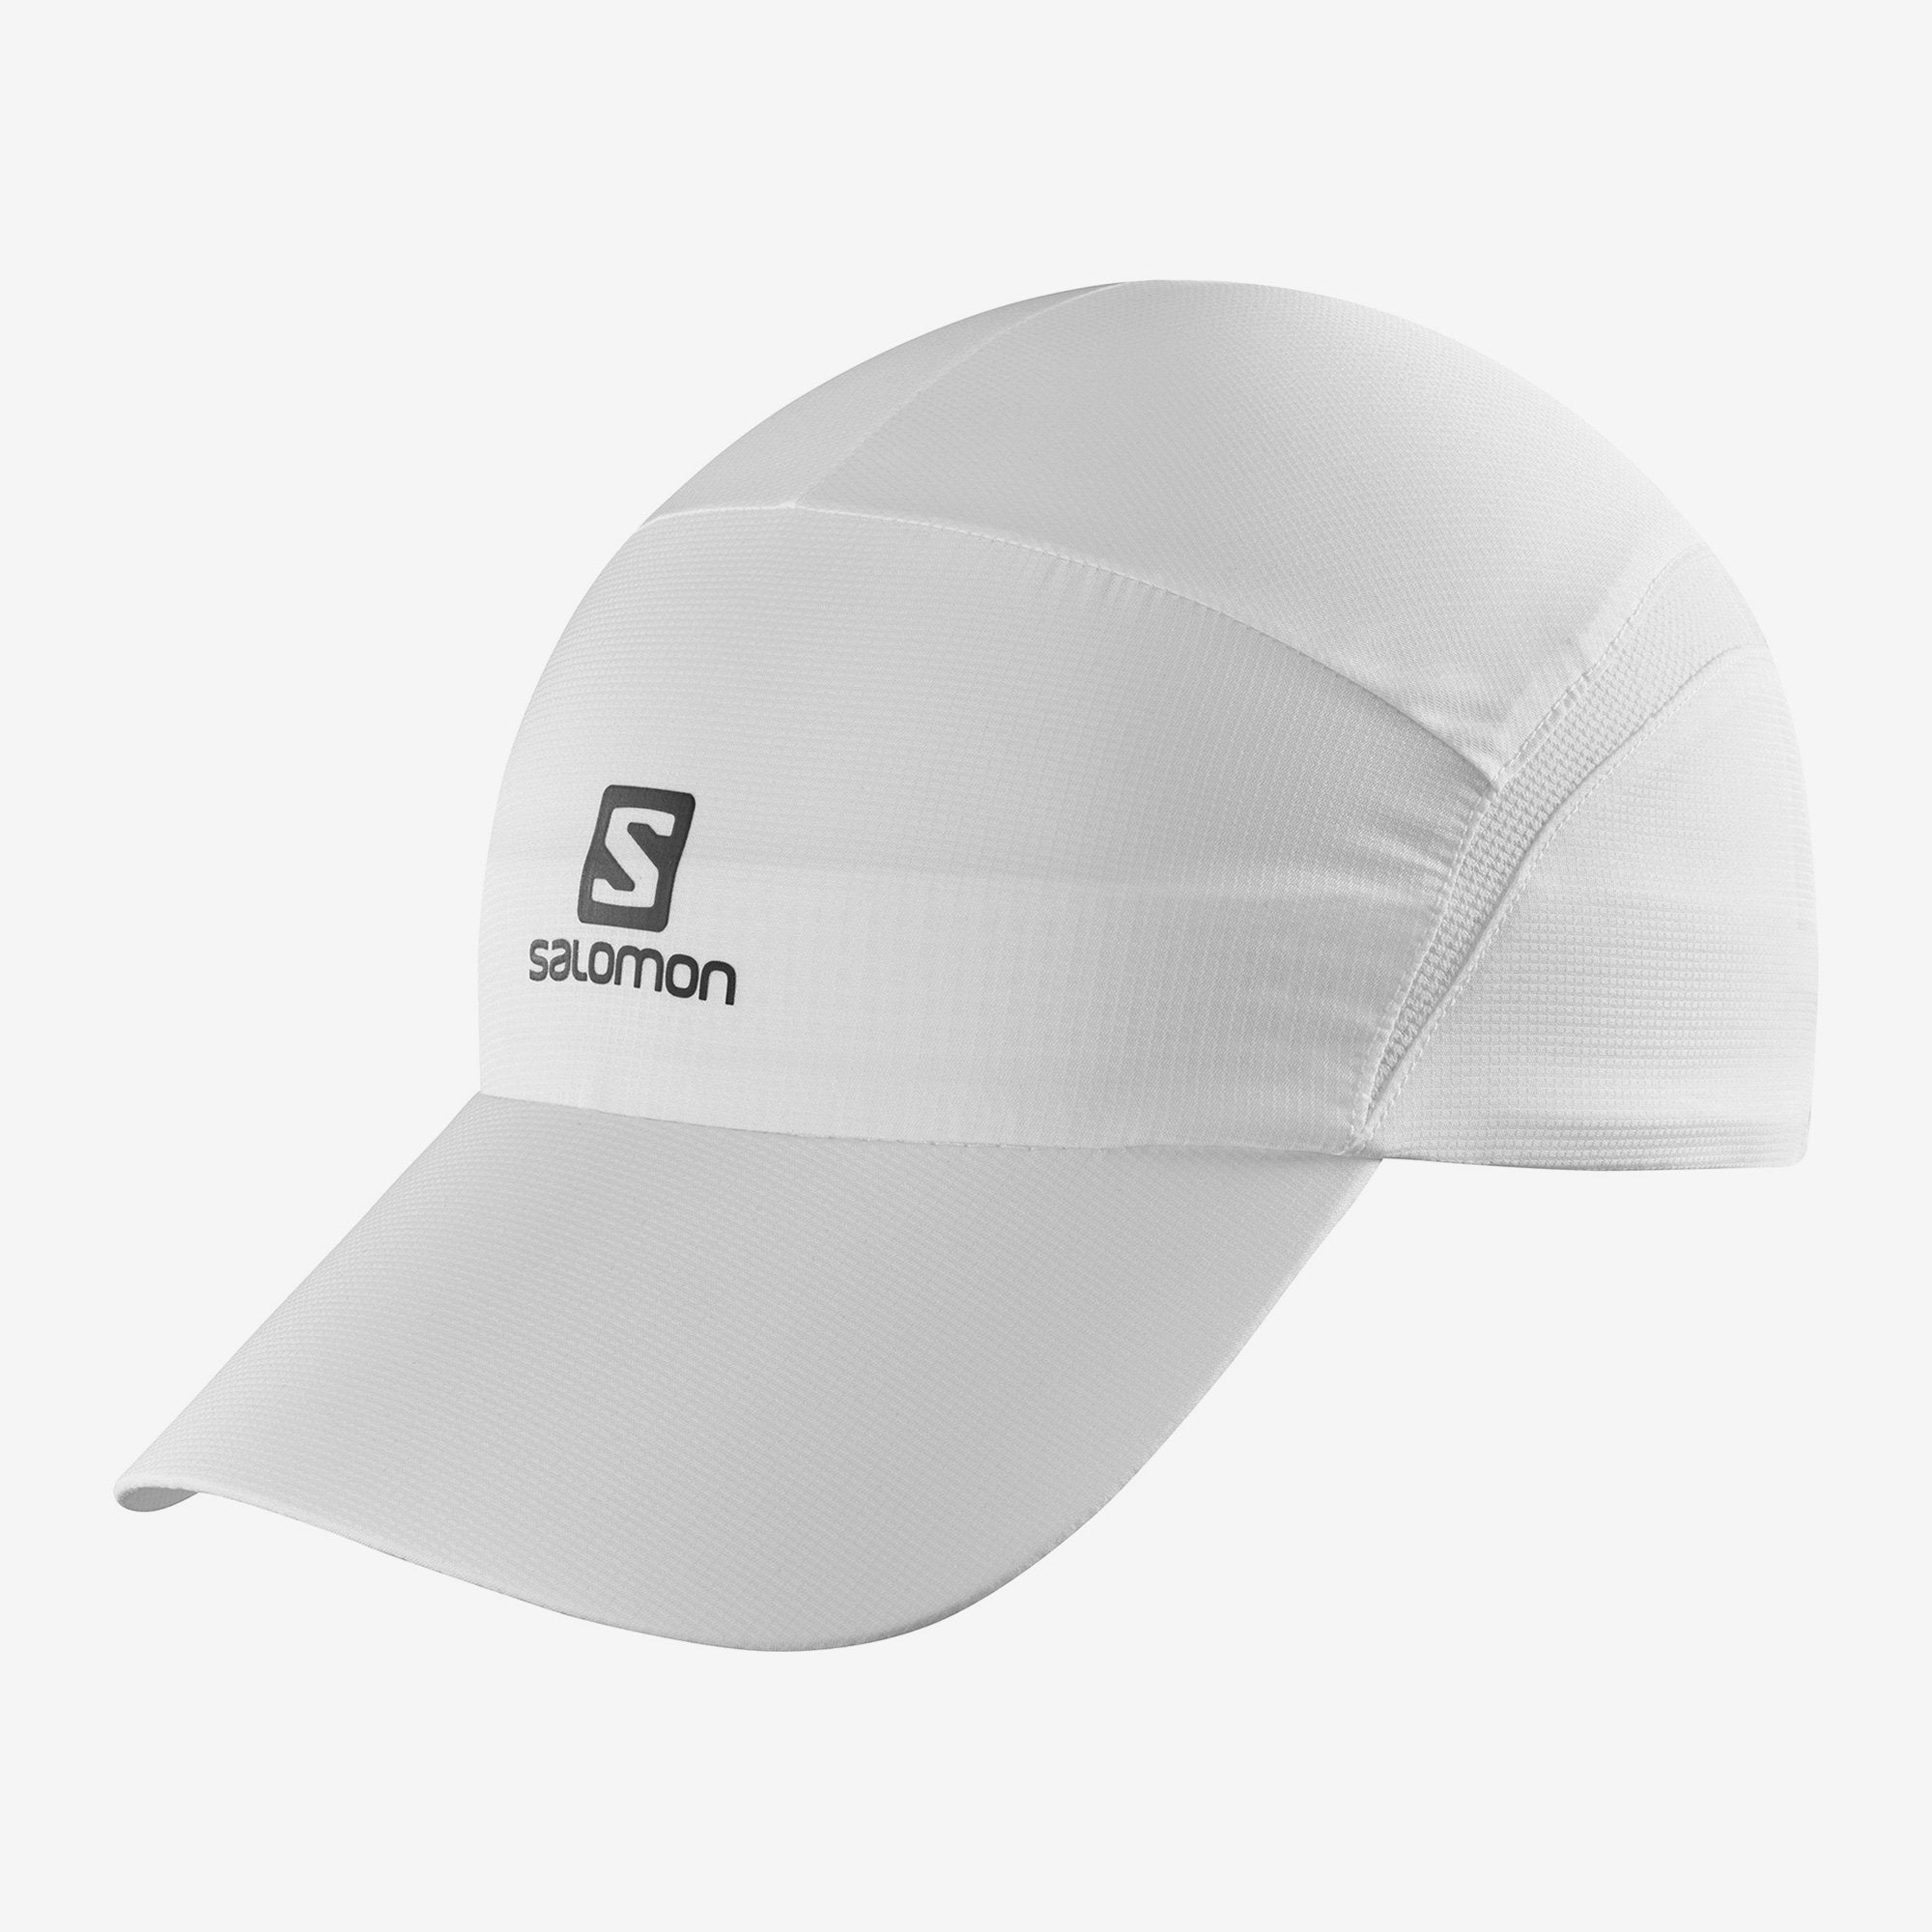 Salomon XA Trail Running Cap (Unisex) - White - Find Your Feet Australia Hobart Launceston Tasmania